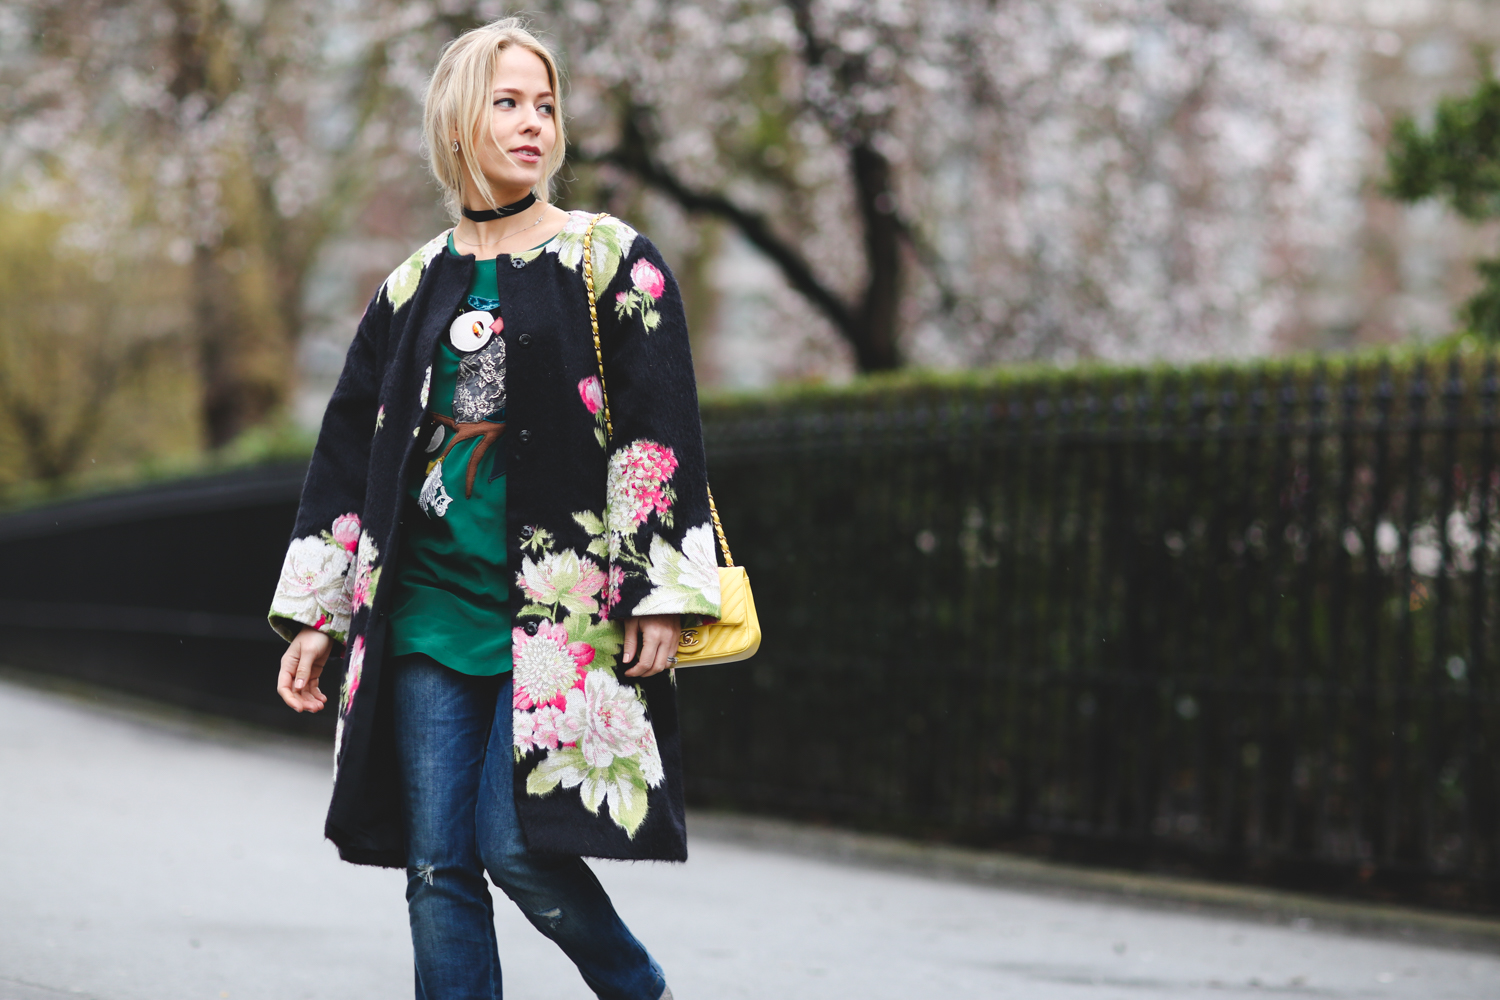 london-fashion-week-day-4-floral-coat-dolce-gabbana-chanel-bag-street-style-blogger-uk-sweatshirts-and-dresses-1.jpg